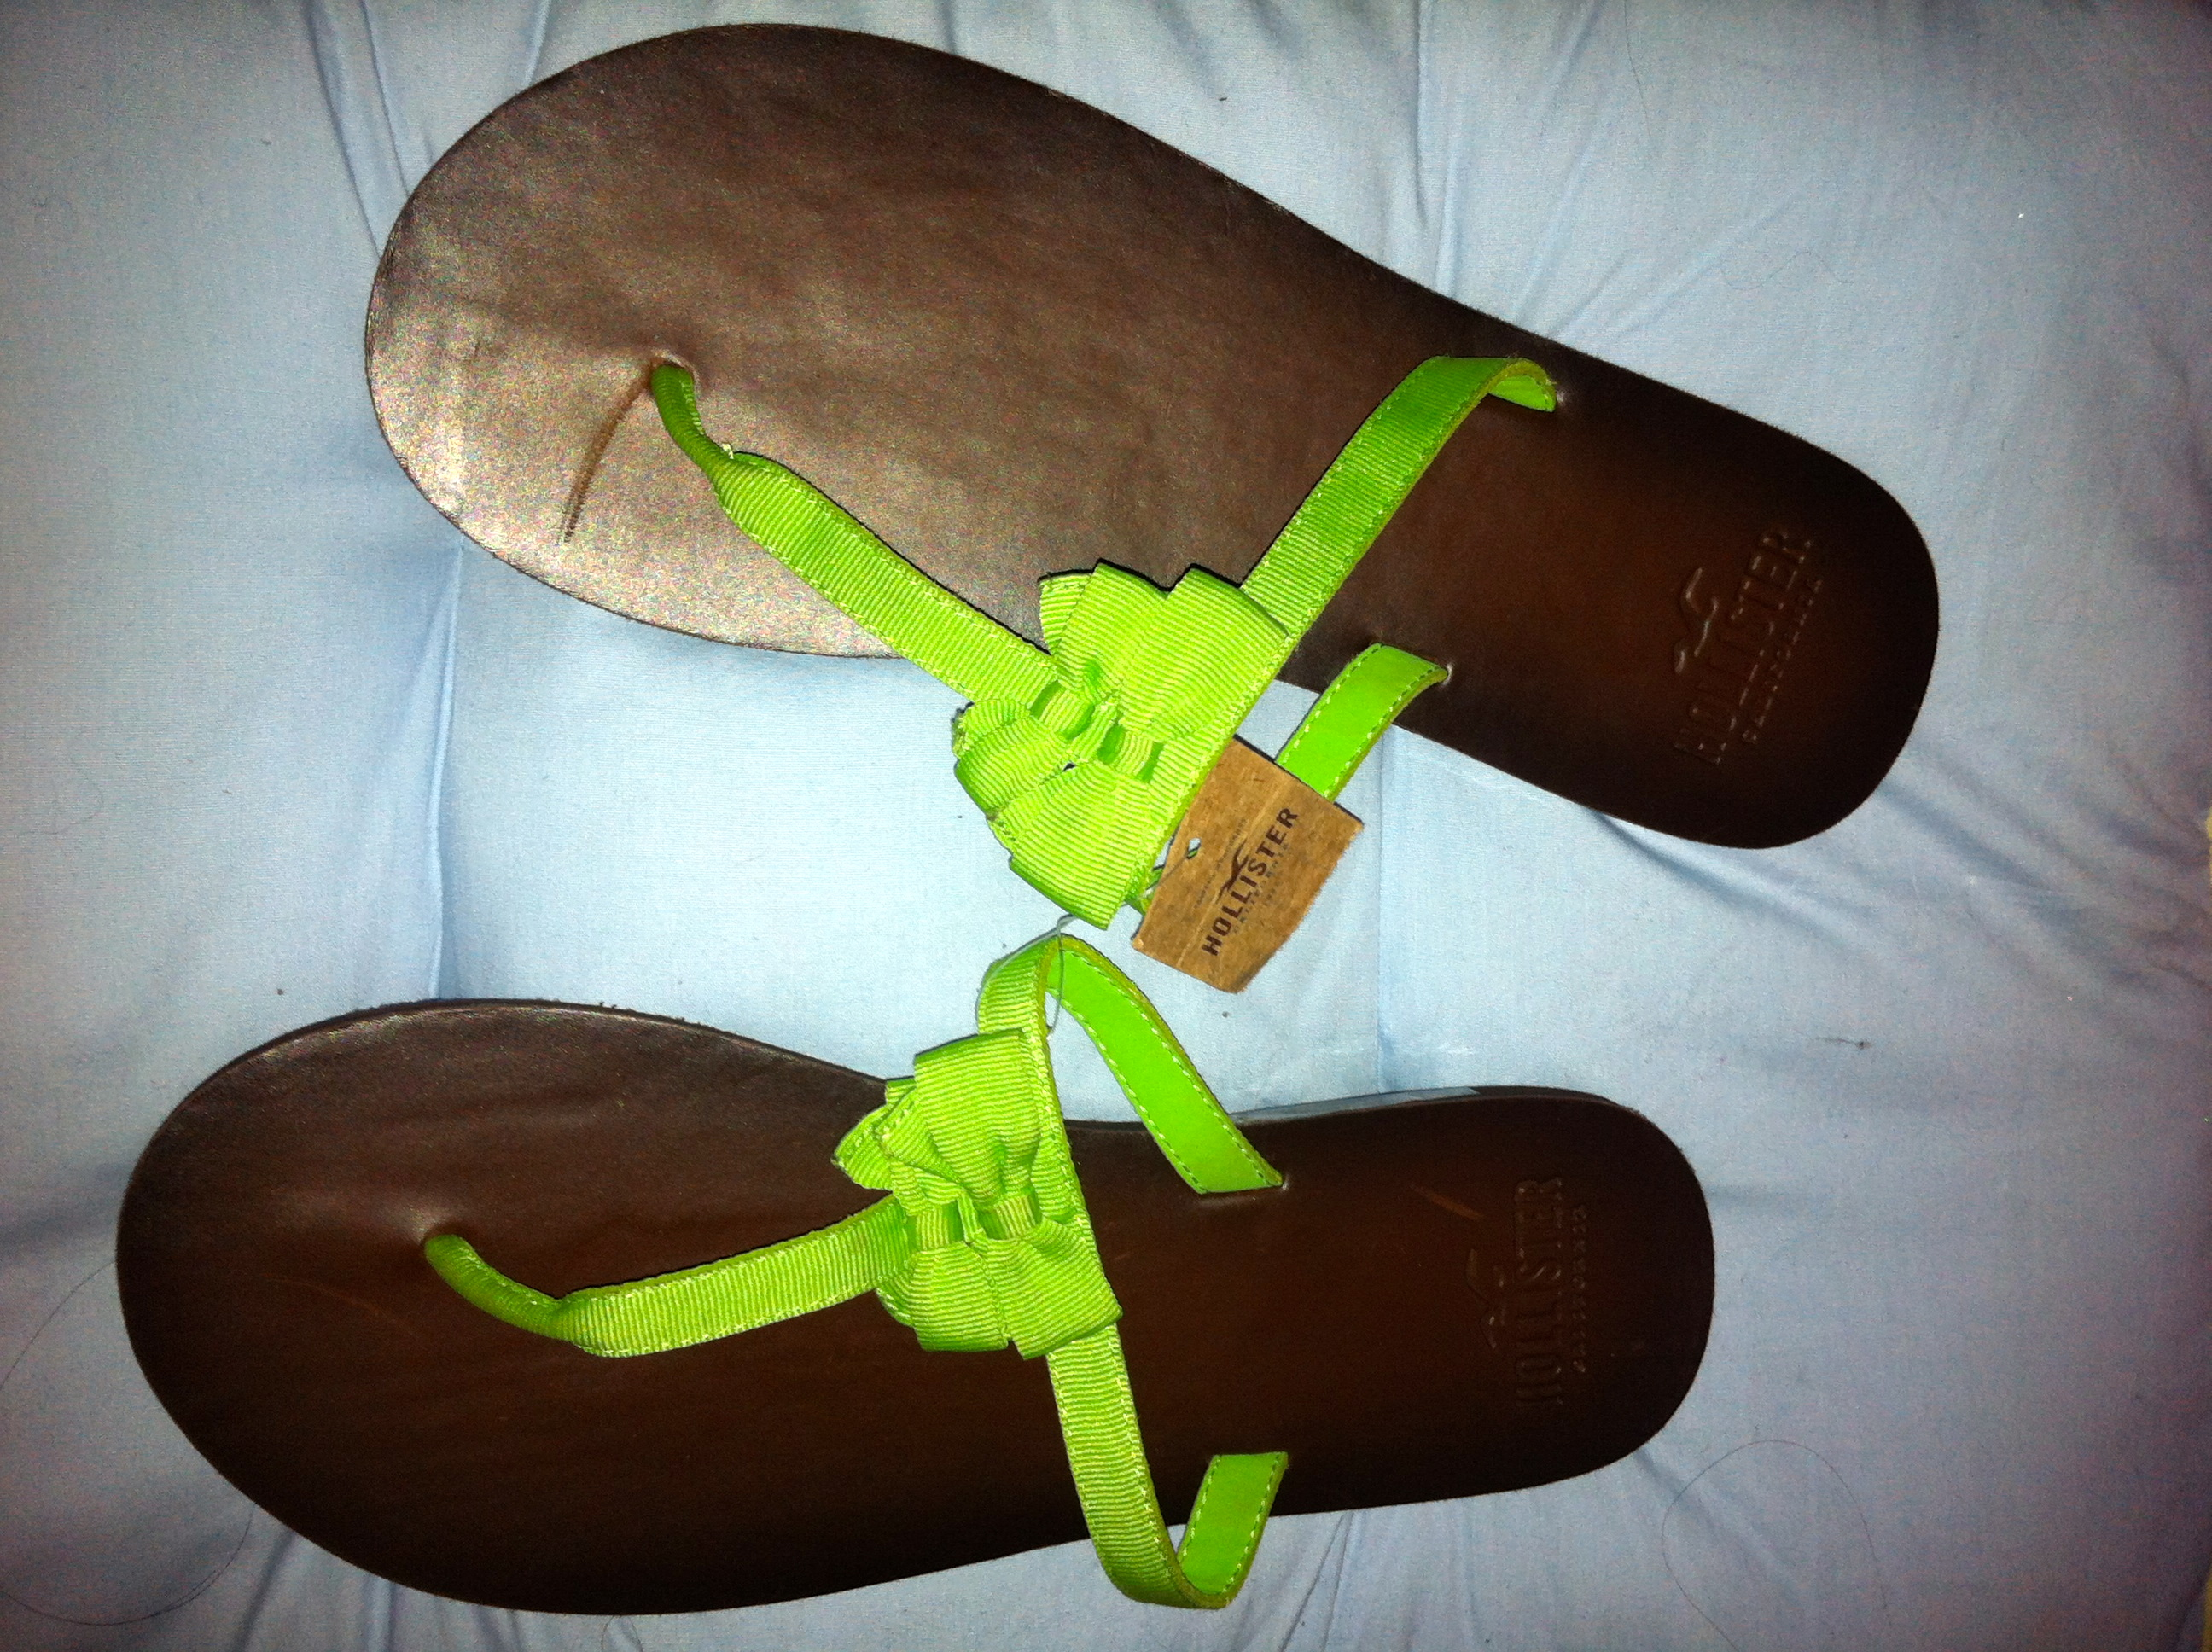 09a0f4e94 Hollister by Abercrombie Fitch Women Leather Flip Flop Green M 8 9 -  Thumbnail ...